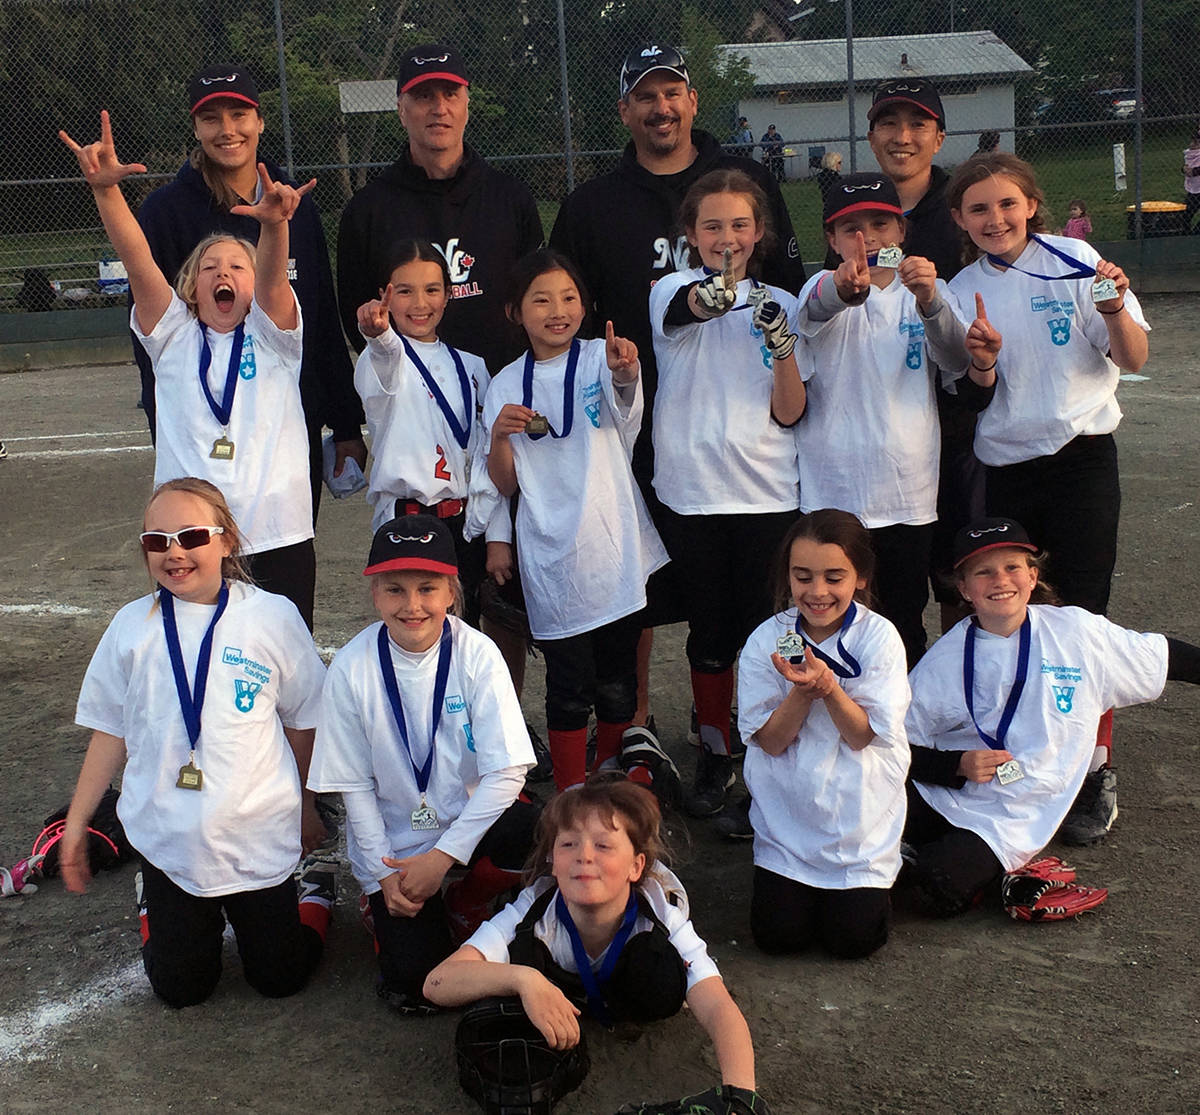 Supermites top Royals in all North Langley final